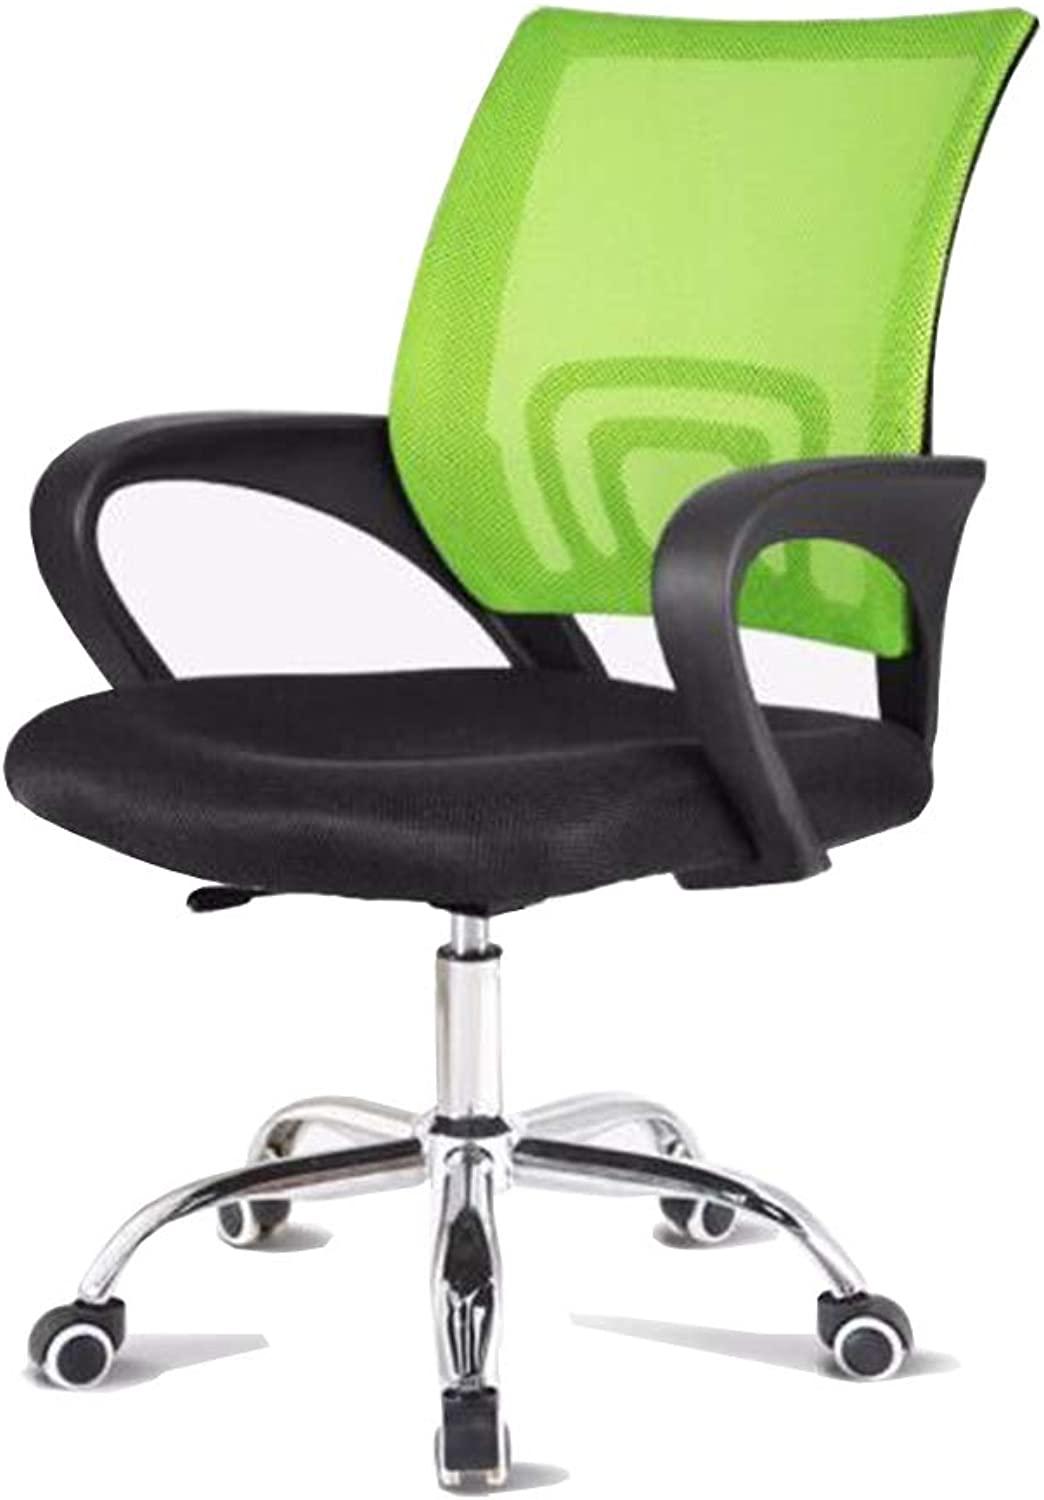 FENGFAN Chair Mesh Office Swivel Task Adjustable Executive Computer with Arms Seating Back Rest (color   Green)